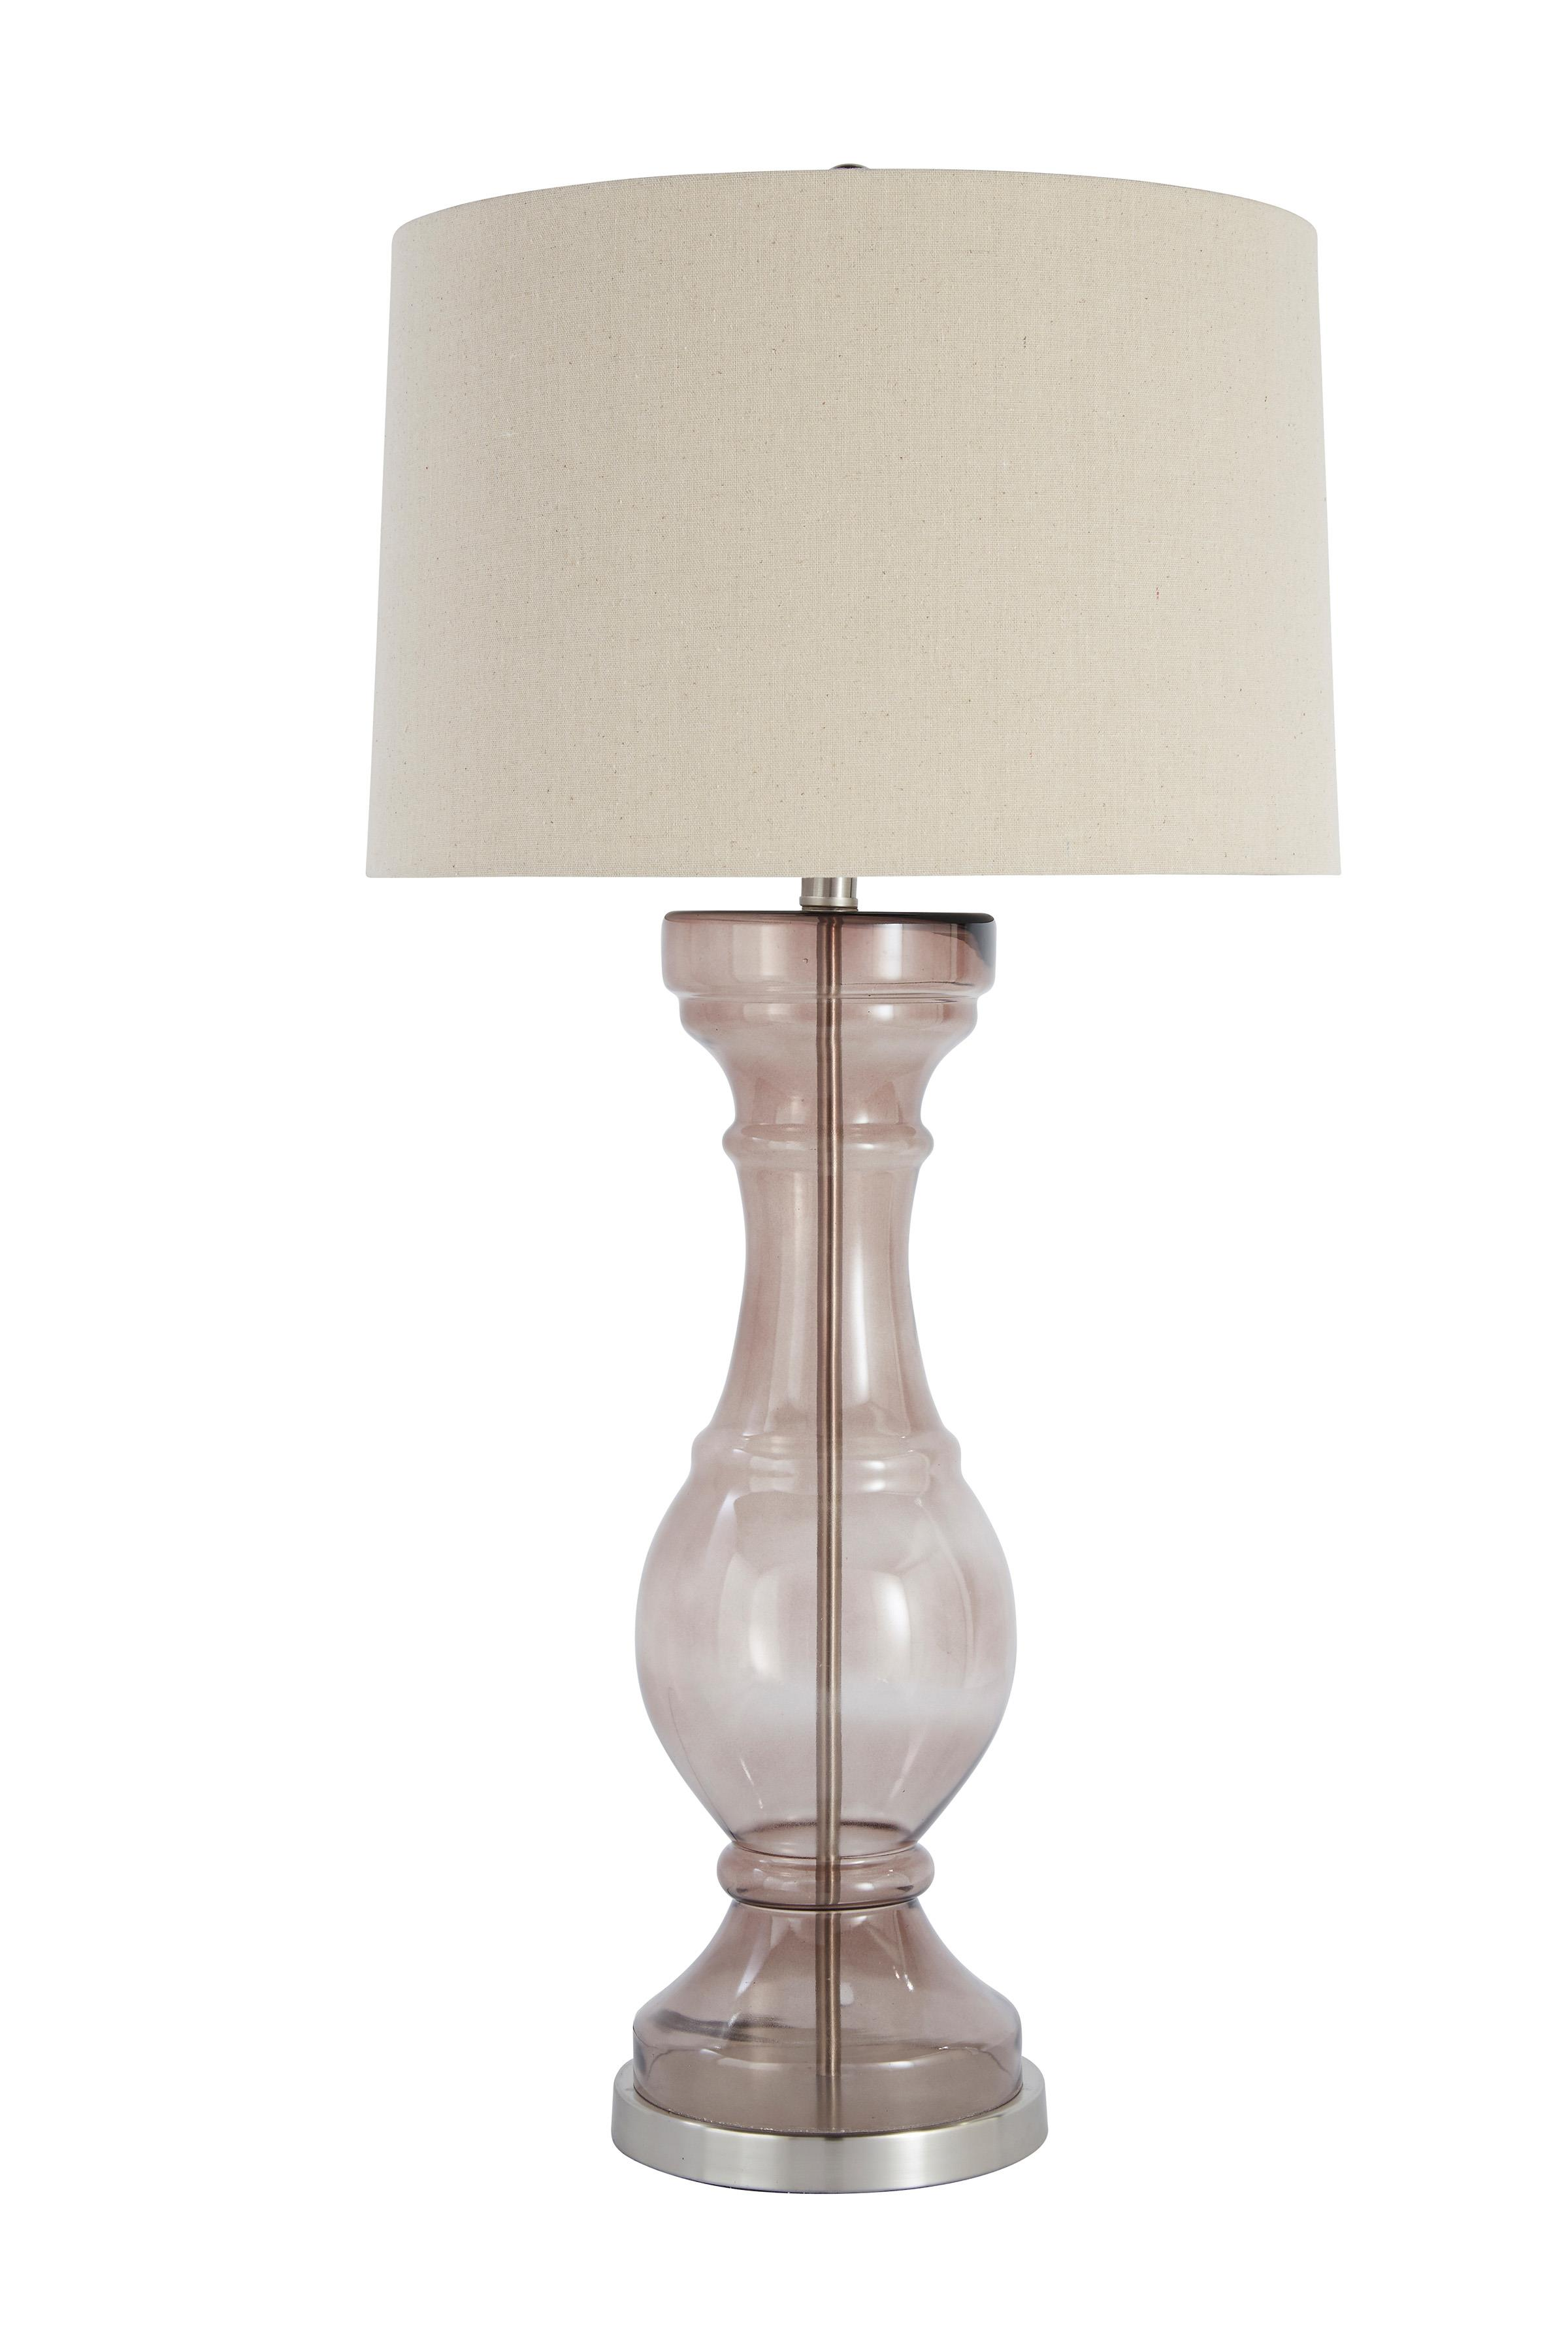 design by ashley furniture lamps contemporary glass table lamp. Black Bedroom Furniture Sets. Home Design Ideas